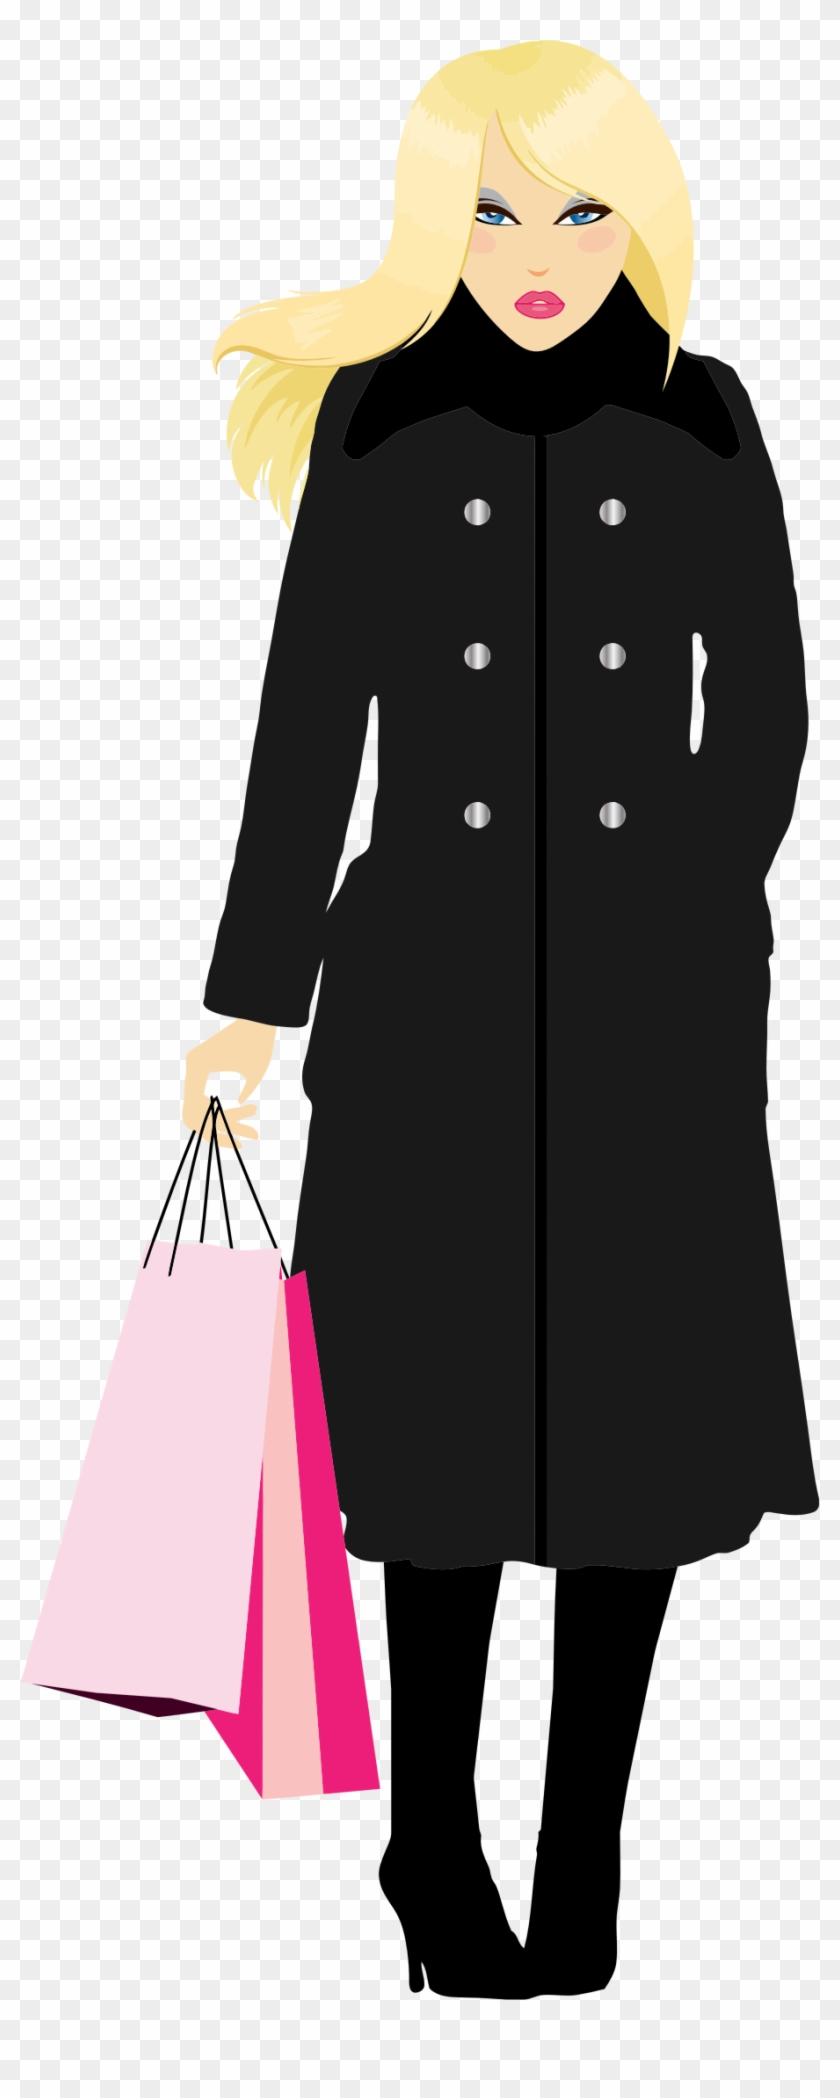 Blondewoman clipart clip art black and white stock This Free Icons Png Design Of Blonde Woman Shopping - Woman Blonde ... clip art black and white stock